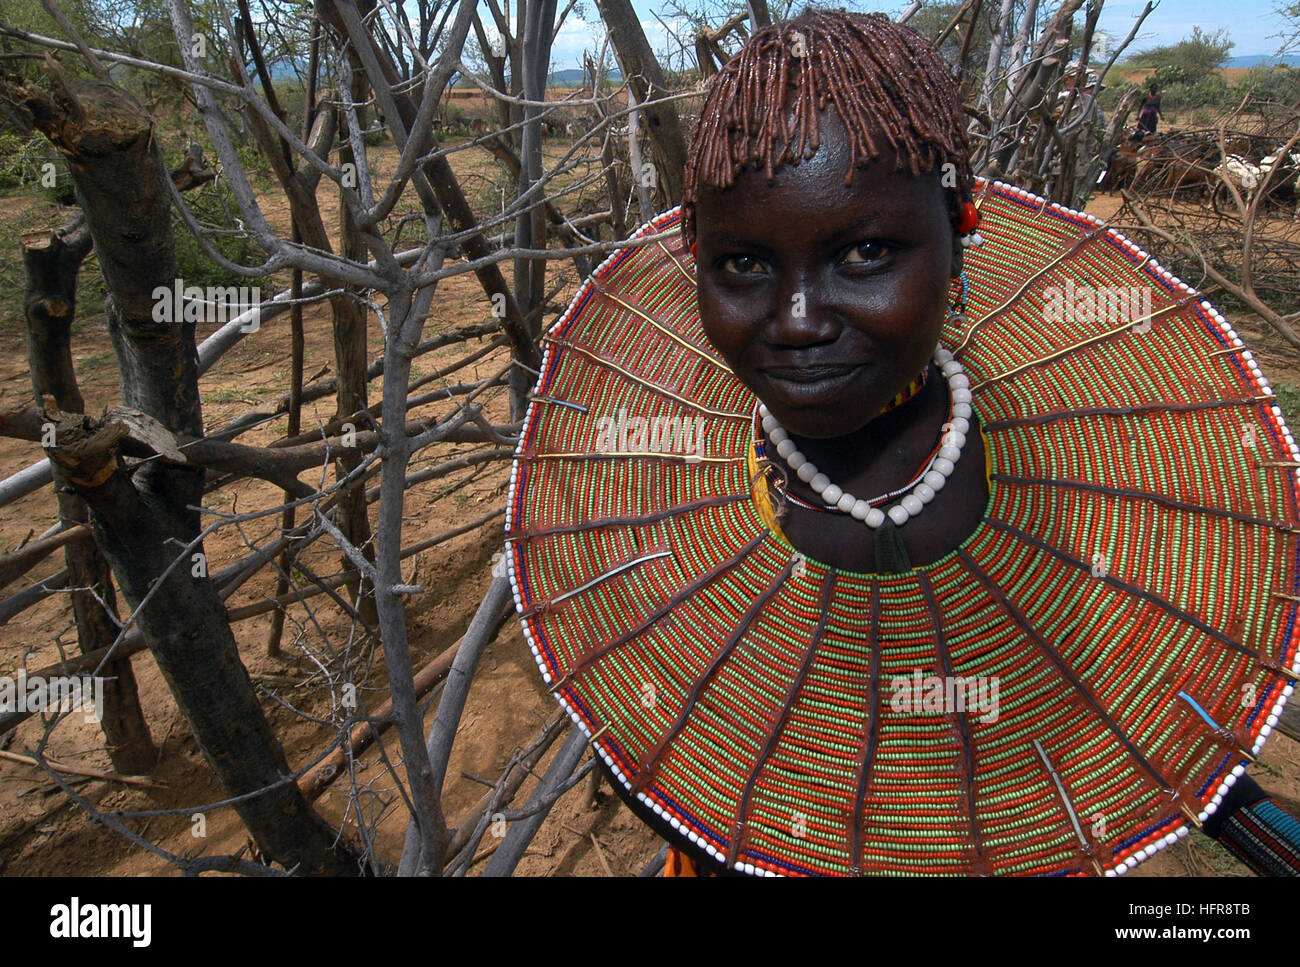 060815-N-0411D-045 Chemeril, Kenya Ð (Aug. 5, 2006) - A Pokot girl poses for a photograph during the Veterinary - Stock Image